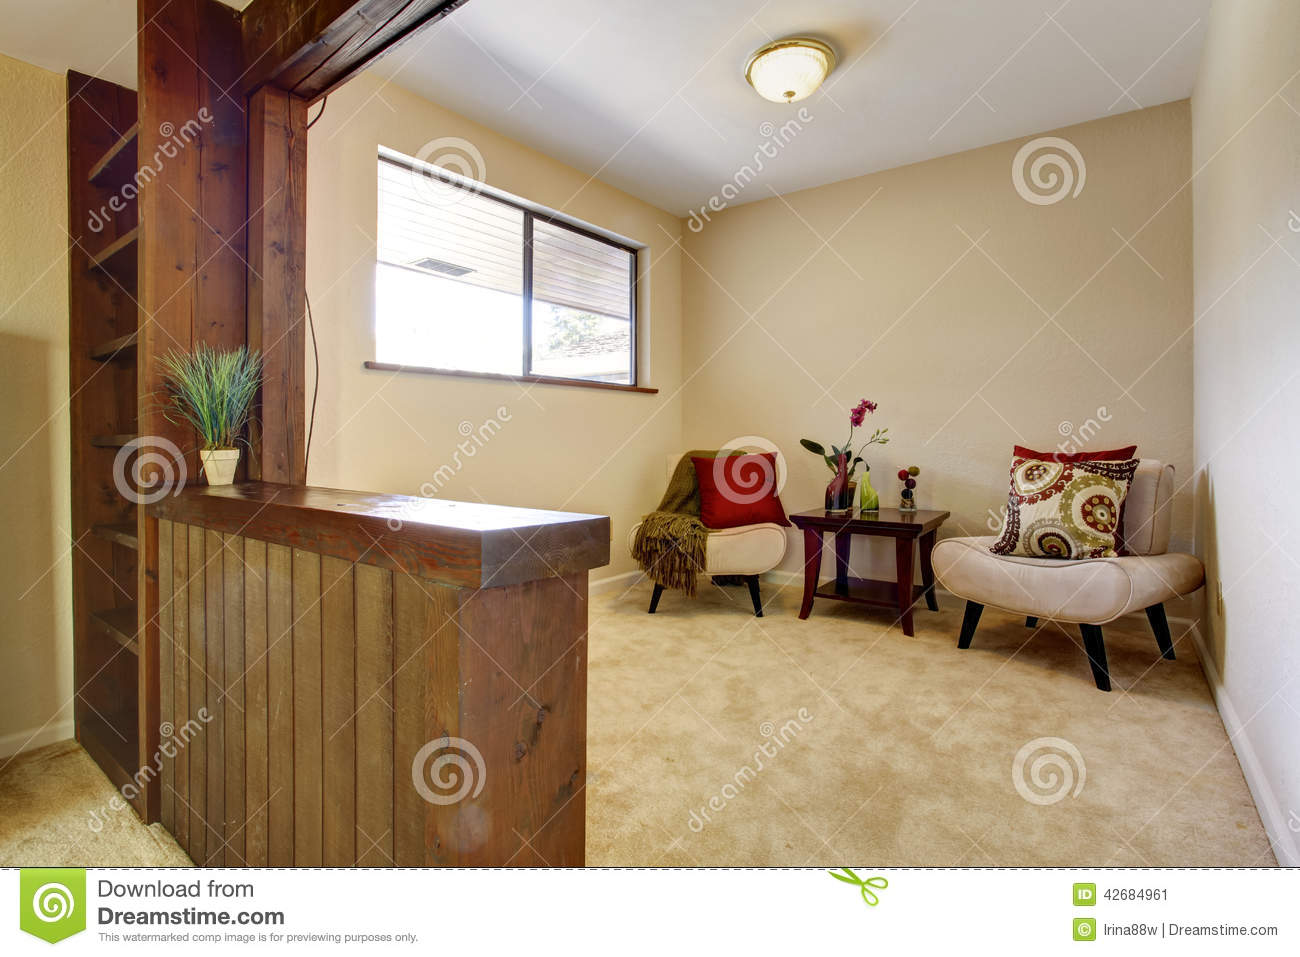 Bedroom interior with sitting area stock photo image for Small area furniture